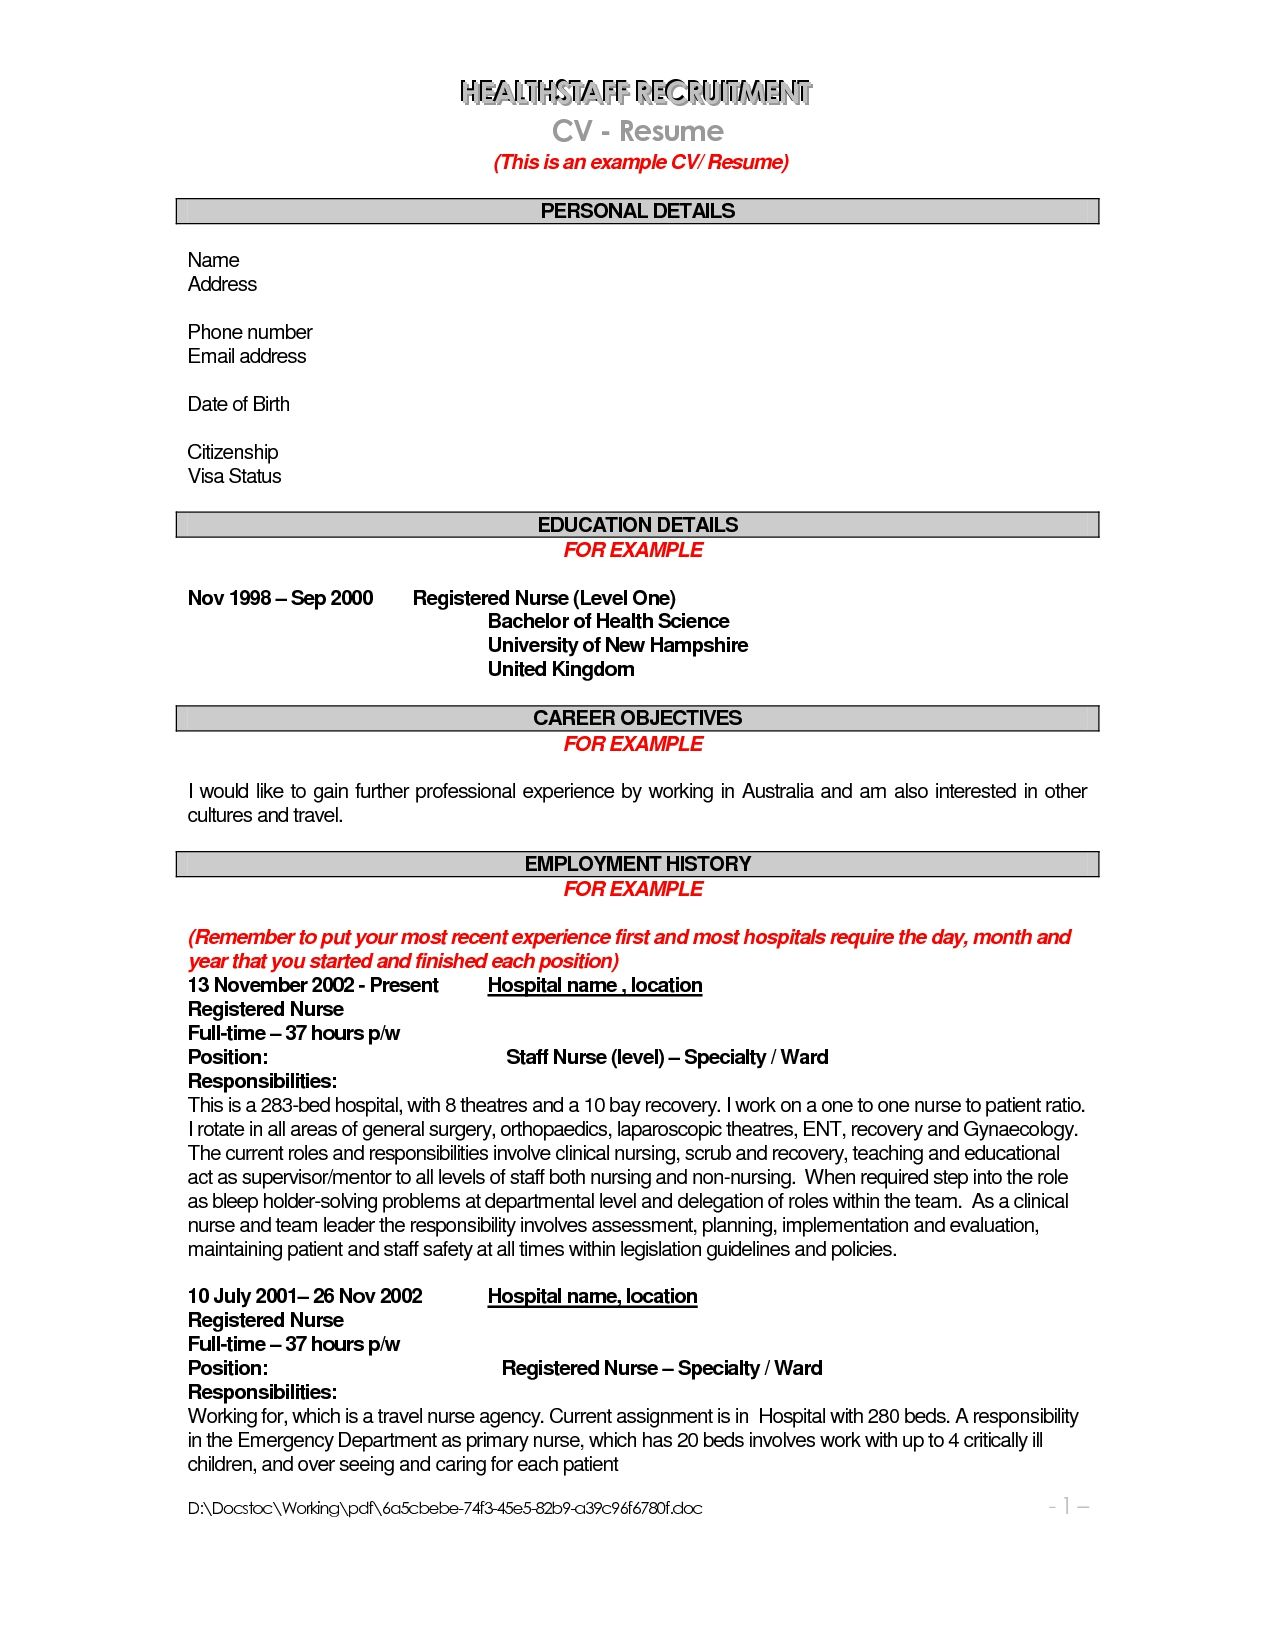 Samples Of Objectives For A Resume Classy Resume Job Description Cover Letter Template Sample Resumes .